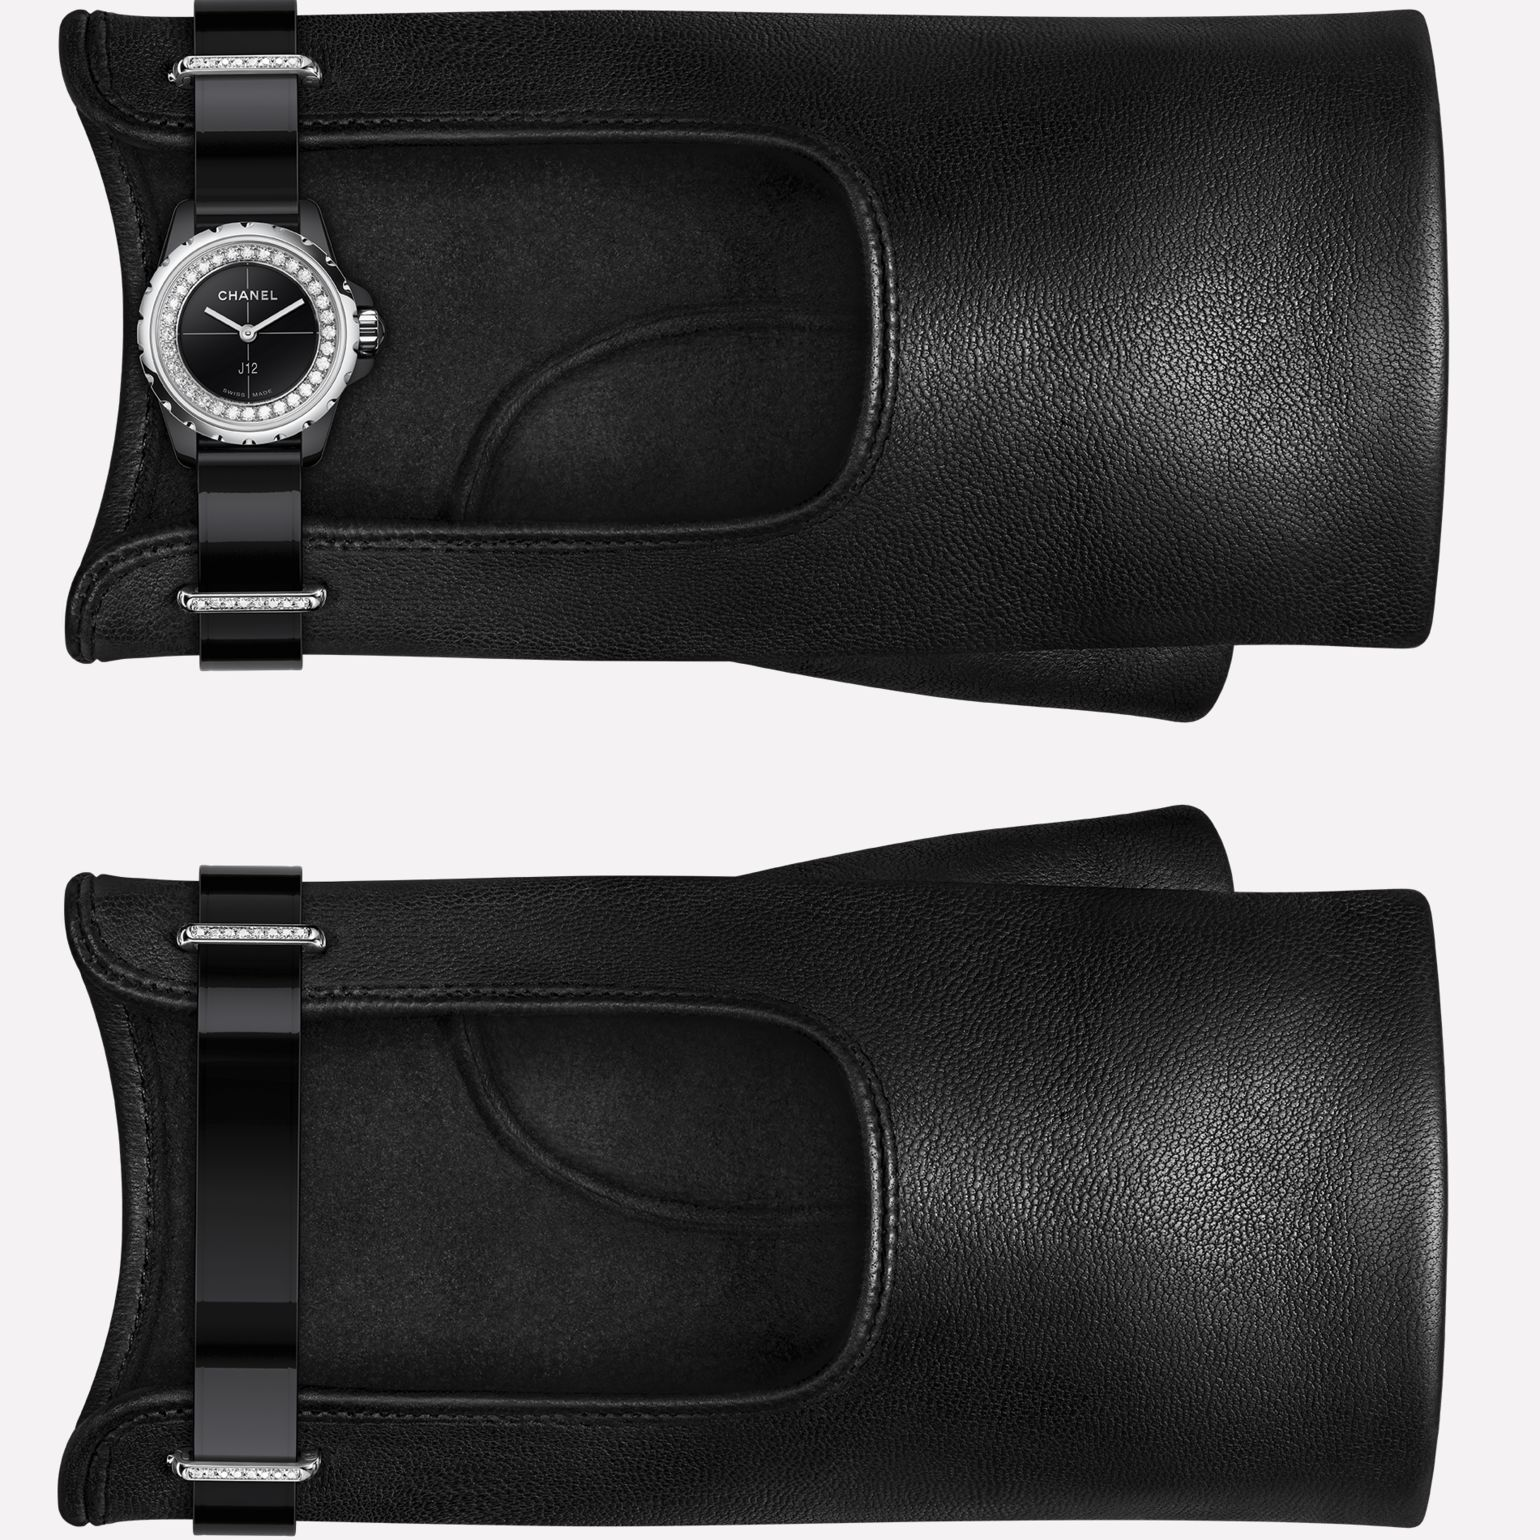 J12·XS Gloves in black leather, black ceramic and steel, flange and loops set with diamonds